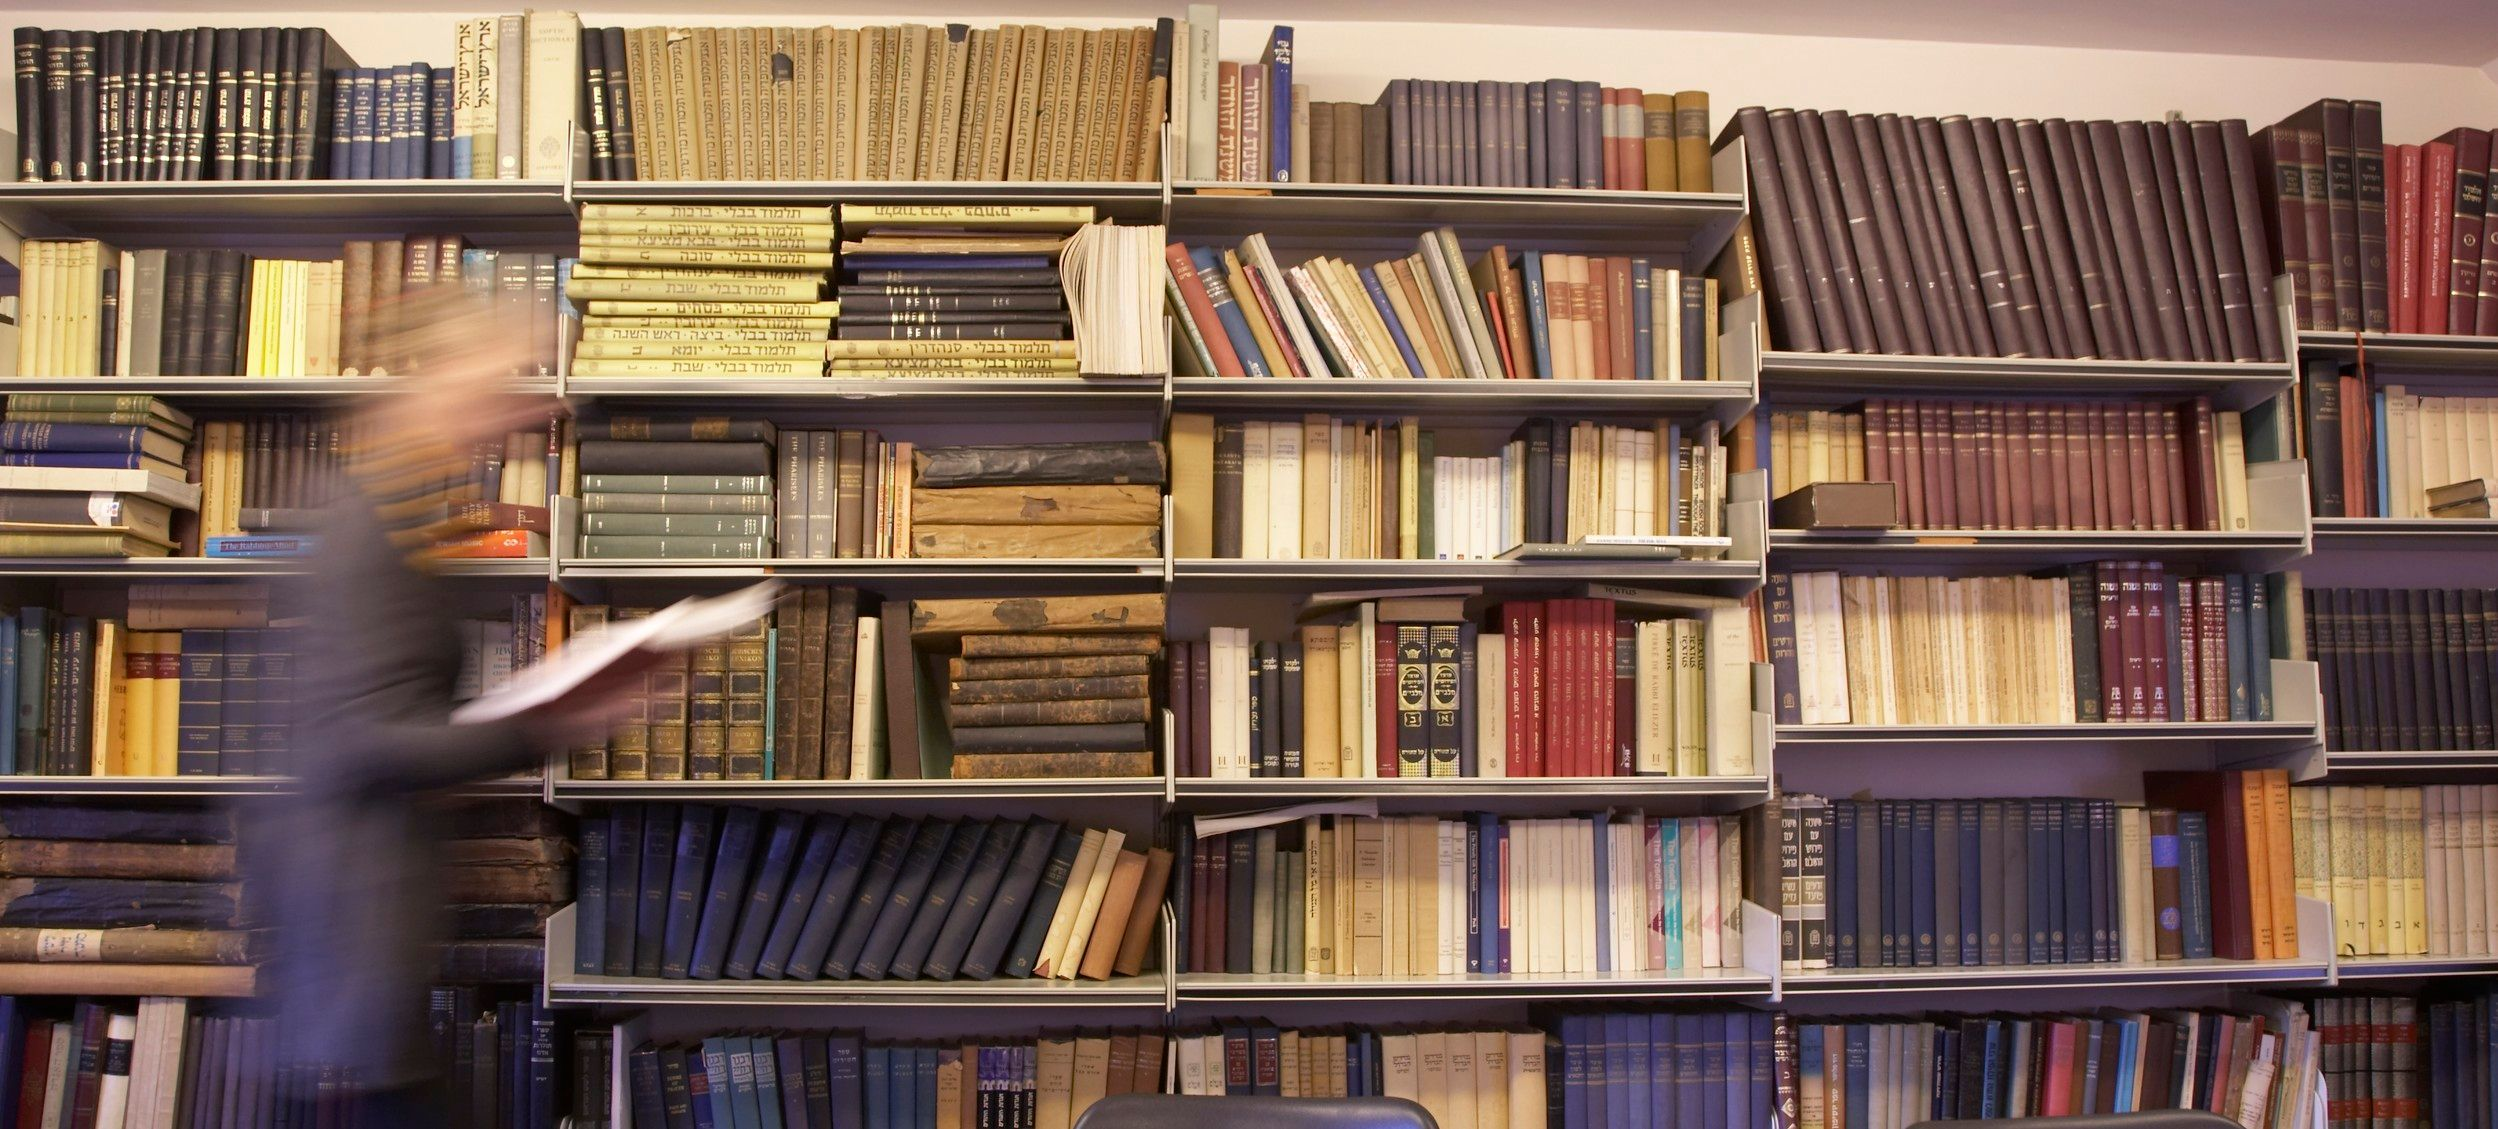 Shelves of books from theology and religion